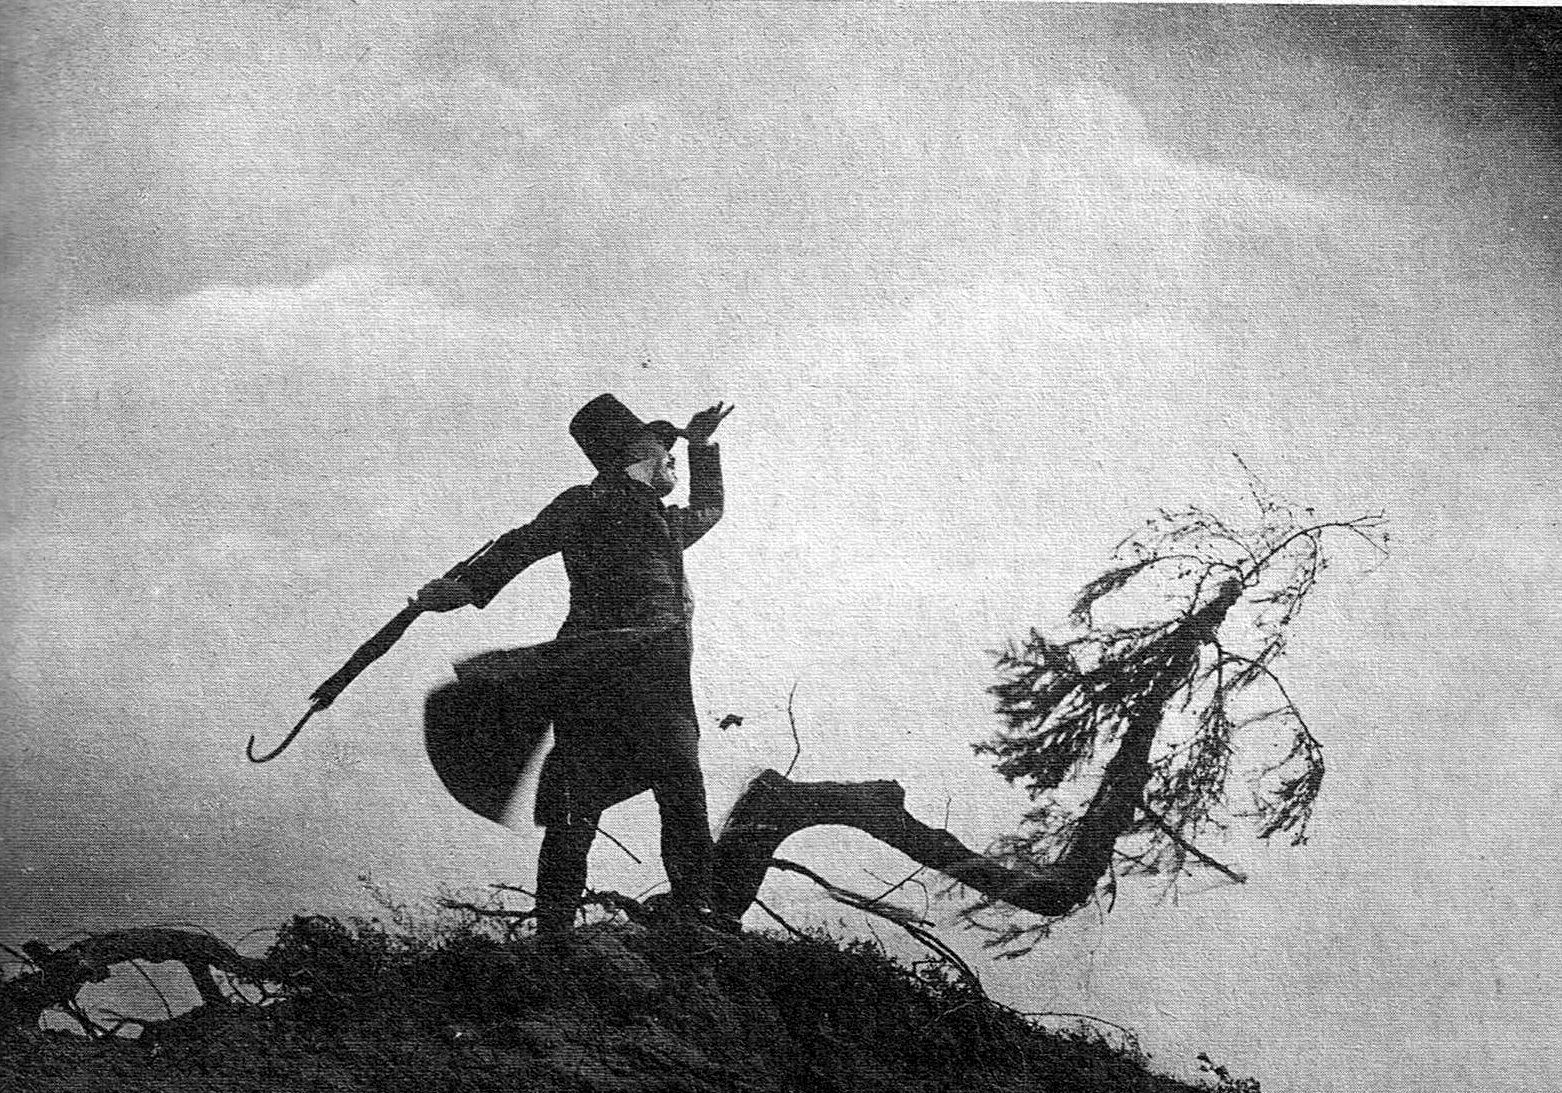 Scapinelli (Werner Krauss) stands on the hillside in The Student of Prague (1926)